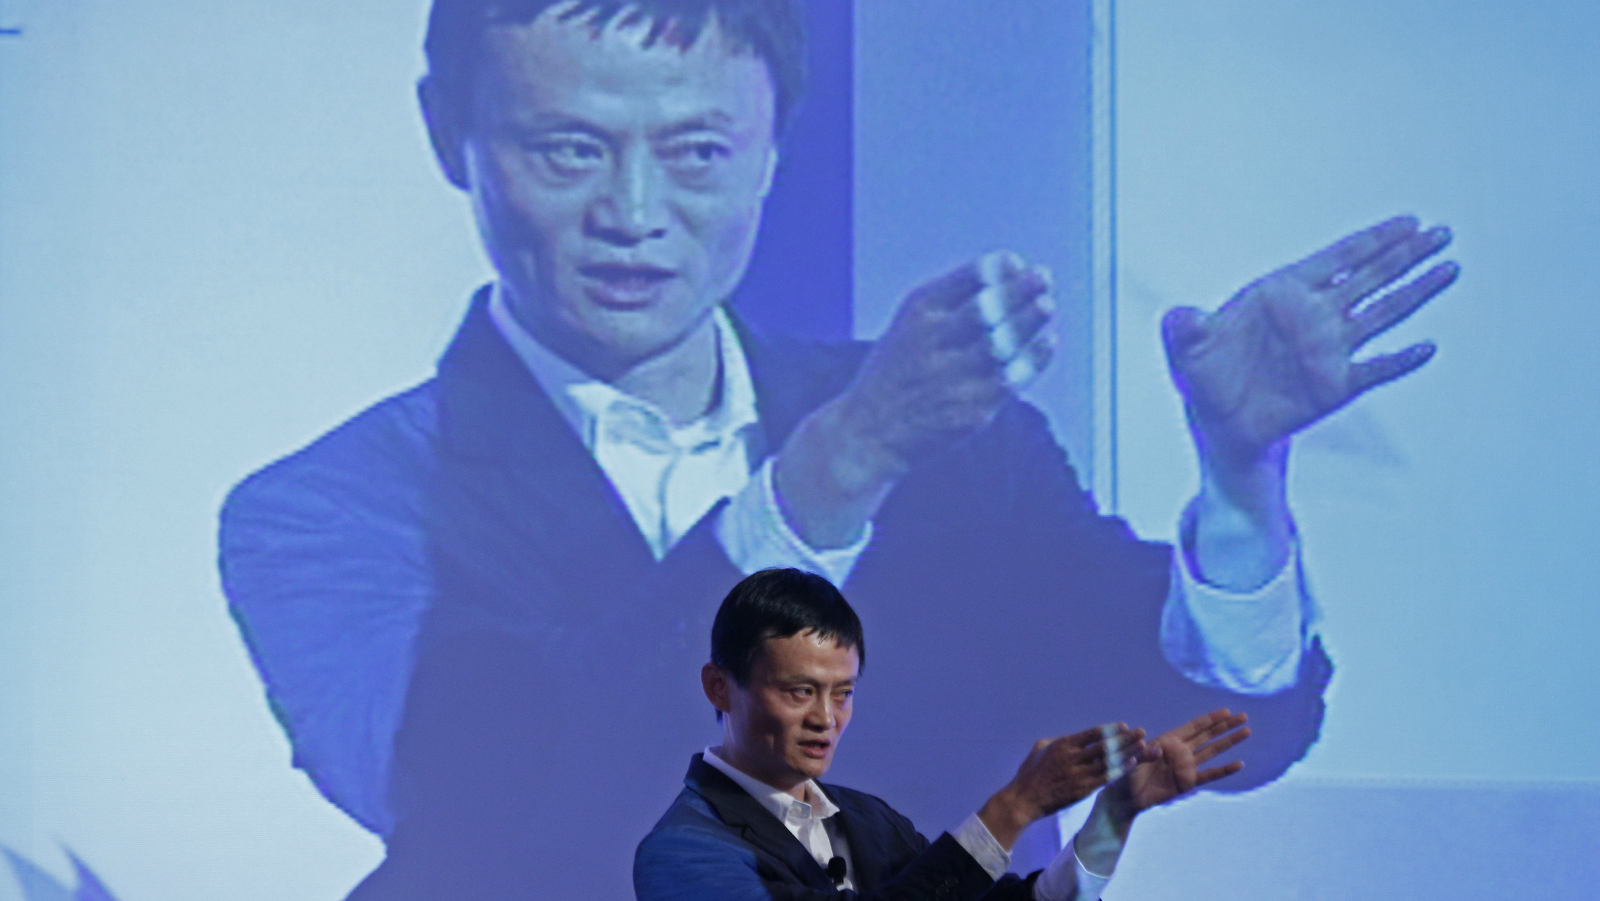 Jack Ma, chairman of China's largest e-commerce firm Alibaba Group, gestures during a conference in Hong Kong Wednesday, March 20, 2012. Ma expects 30 percent of China's total retail sales to be conducted online in five years' time. (AP Photo/Vincent Yu)